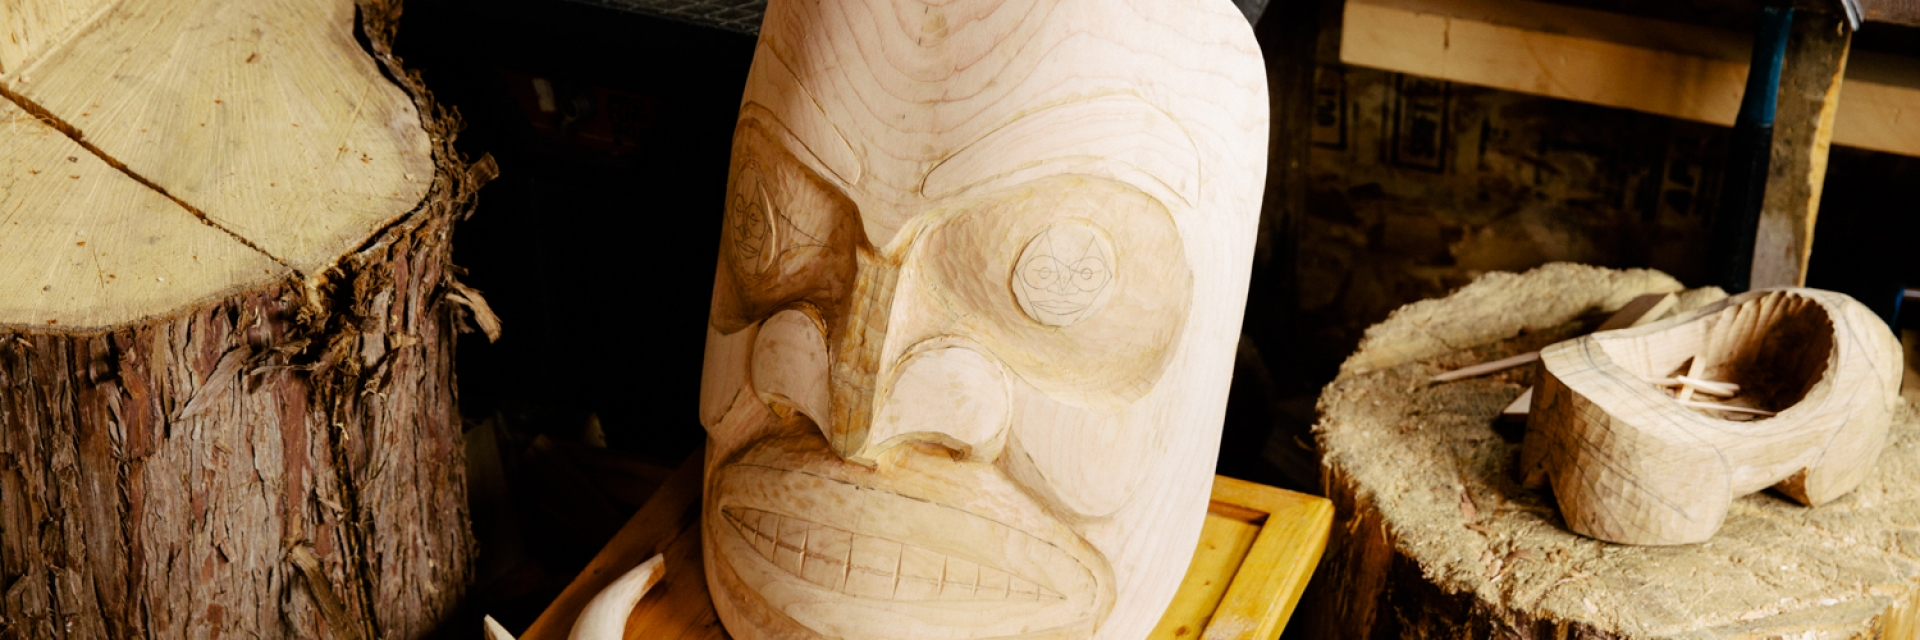 A closeup view of a traditional Indigenous carving